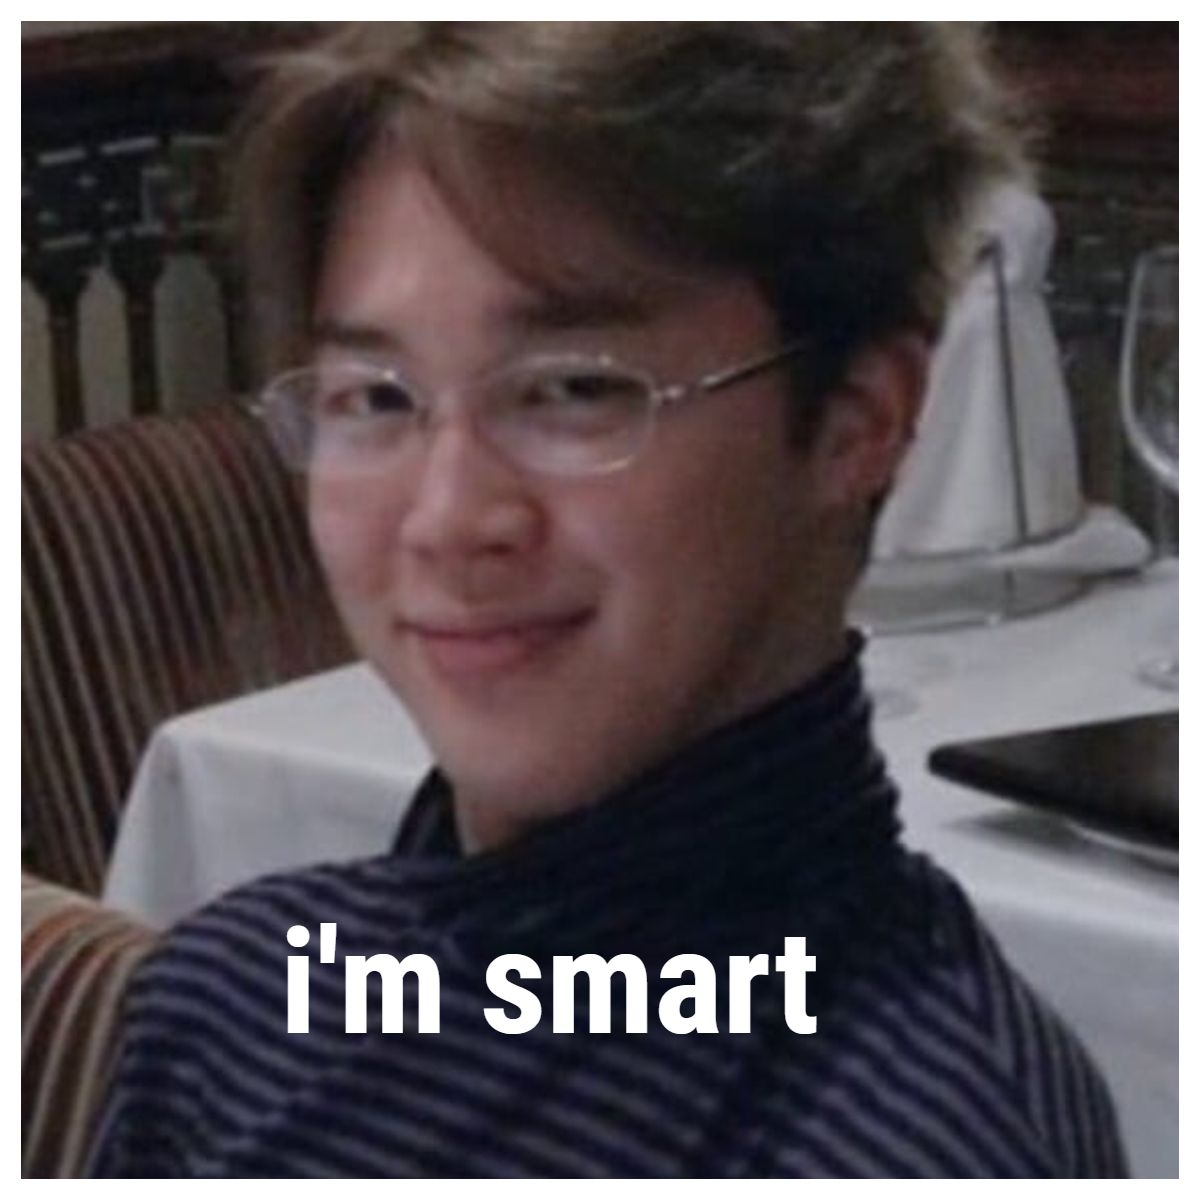 Best Funny Aesthetic i'm smart meme #jimin #bts #meme #funny jimin i'm smart meme | don't reupload! enjoy your meming